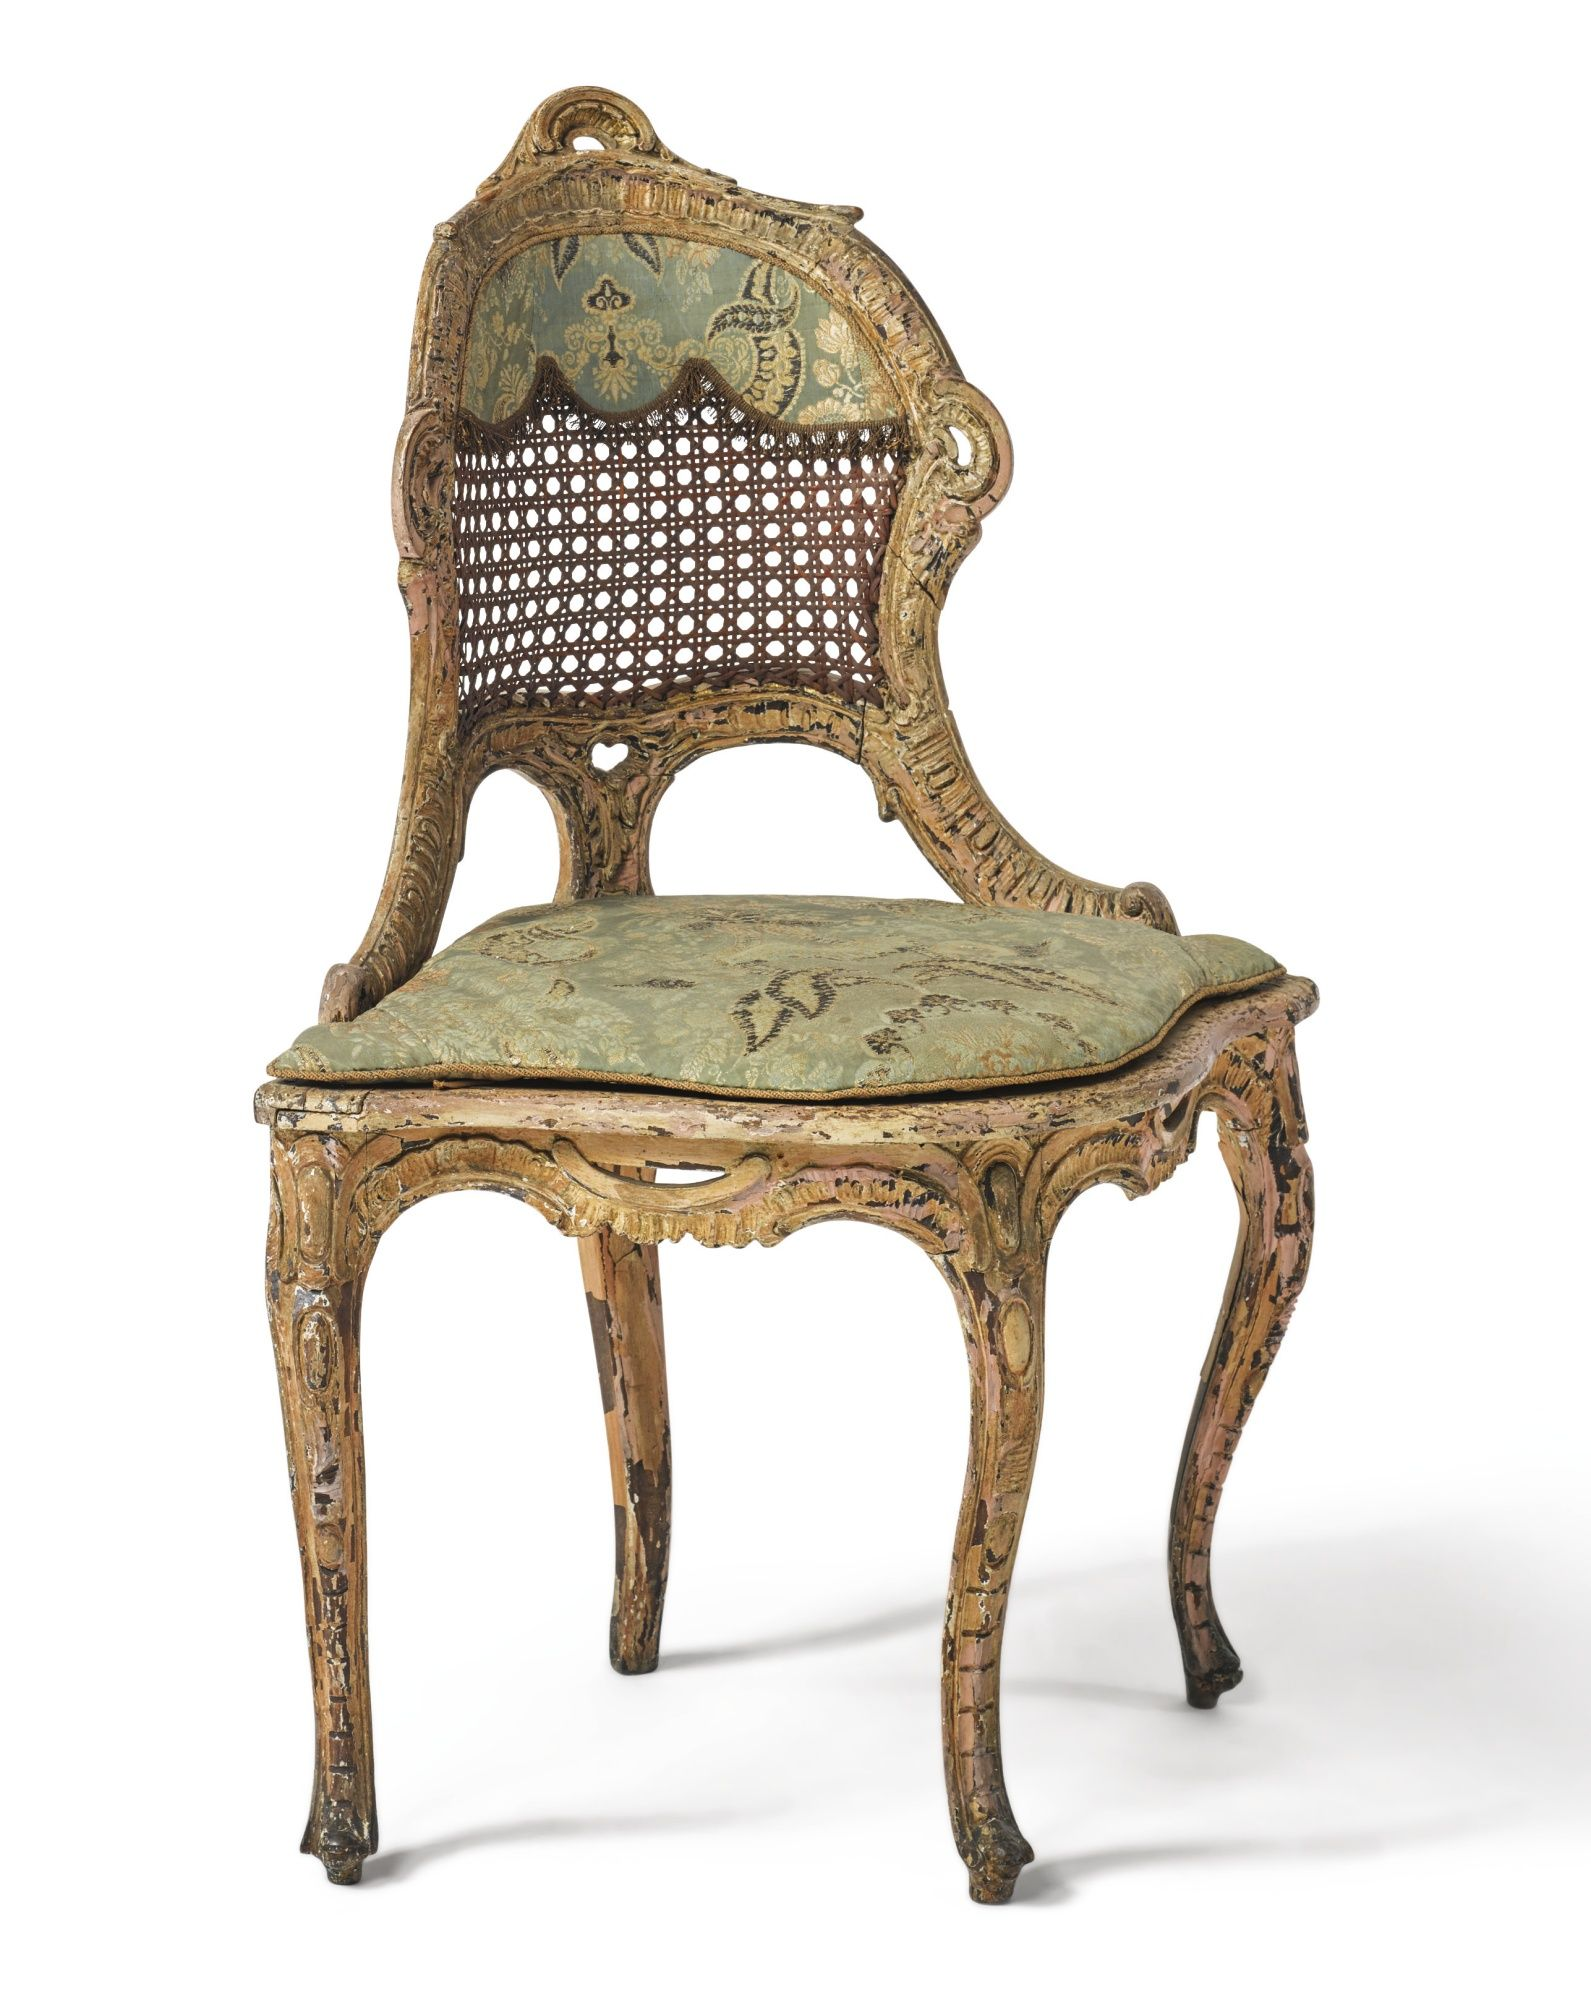 A NORTH ITALIAN ROCOCO POLYCHROME-PAINTED CORNER CHAIR POSSIBLY SOUTH  GERMAN, THIRD QUARTER 18TH C. - A NORTH ITALIAN ROCOCO POLYCHROME-PAINTED CORNER CHAIR POSSIBLY